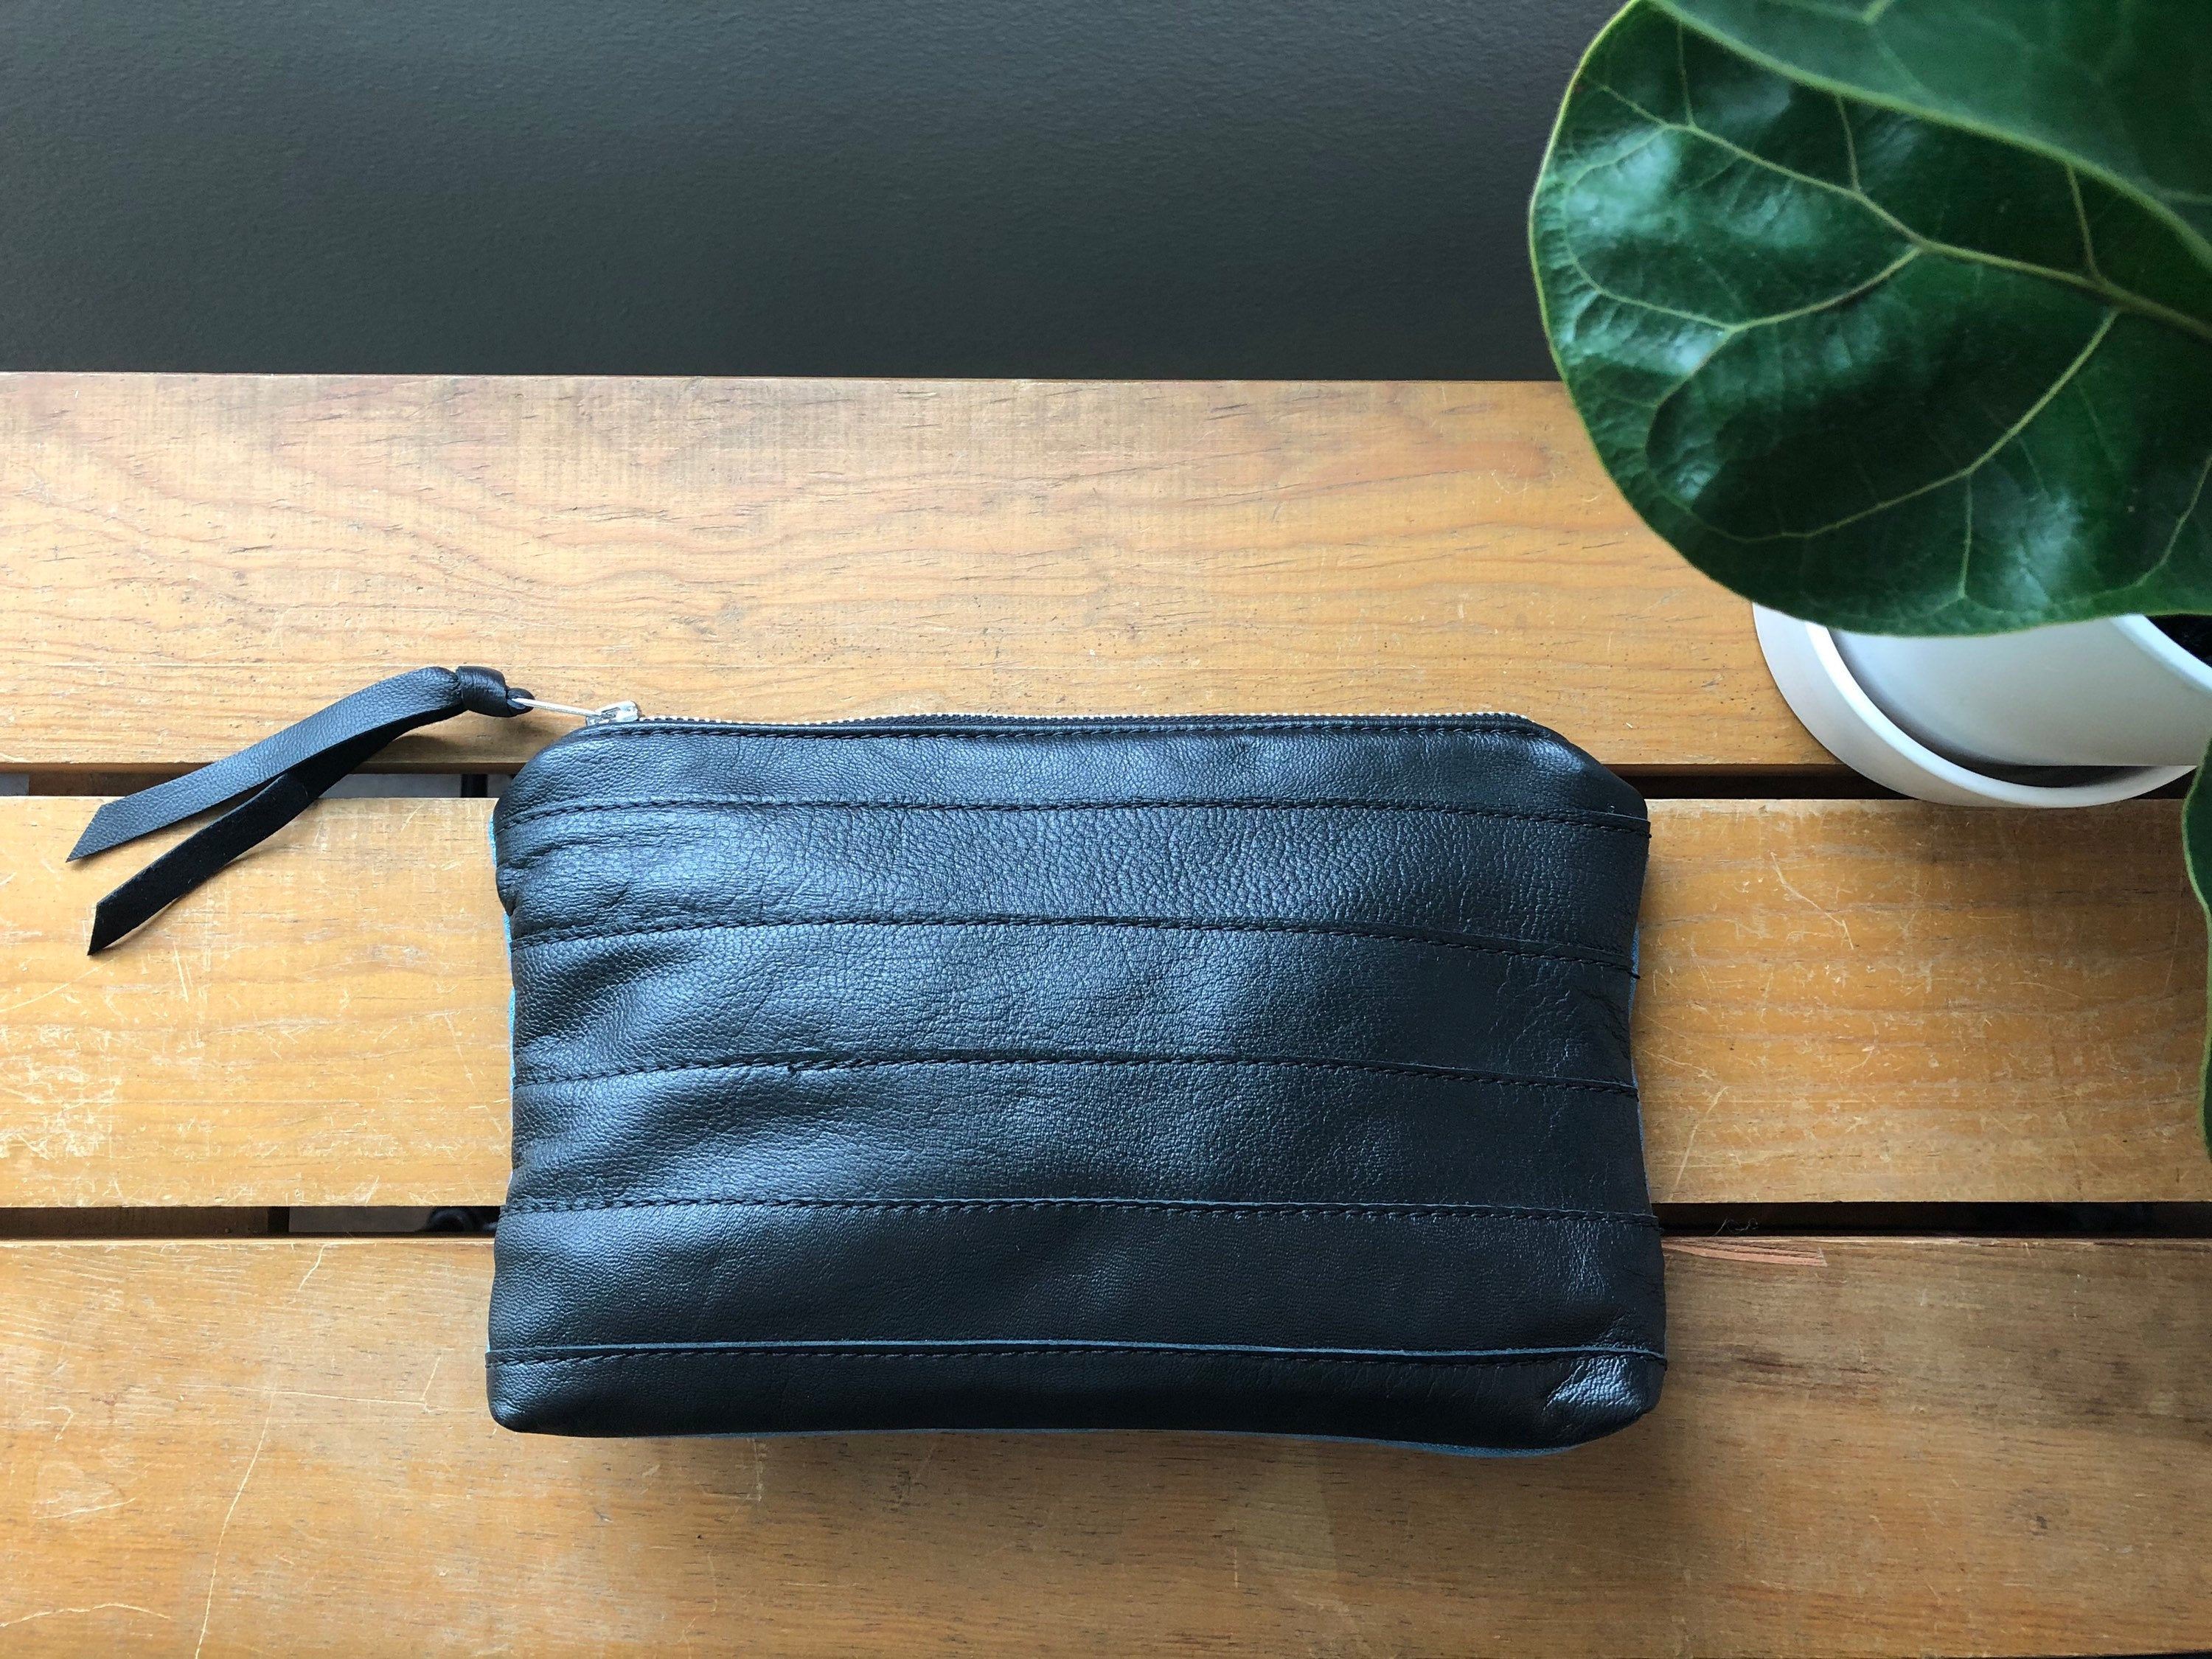 Black leather front of two toned clutch on table near plant